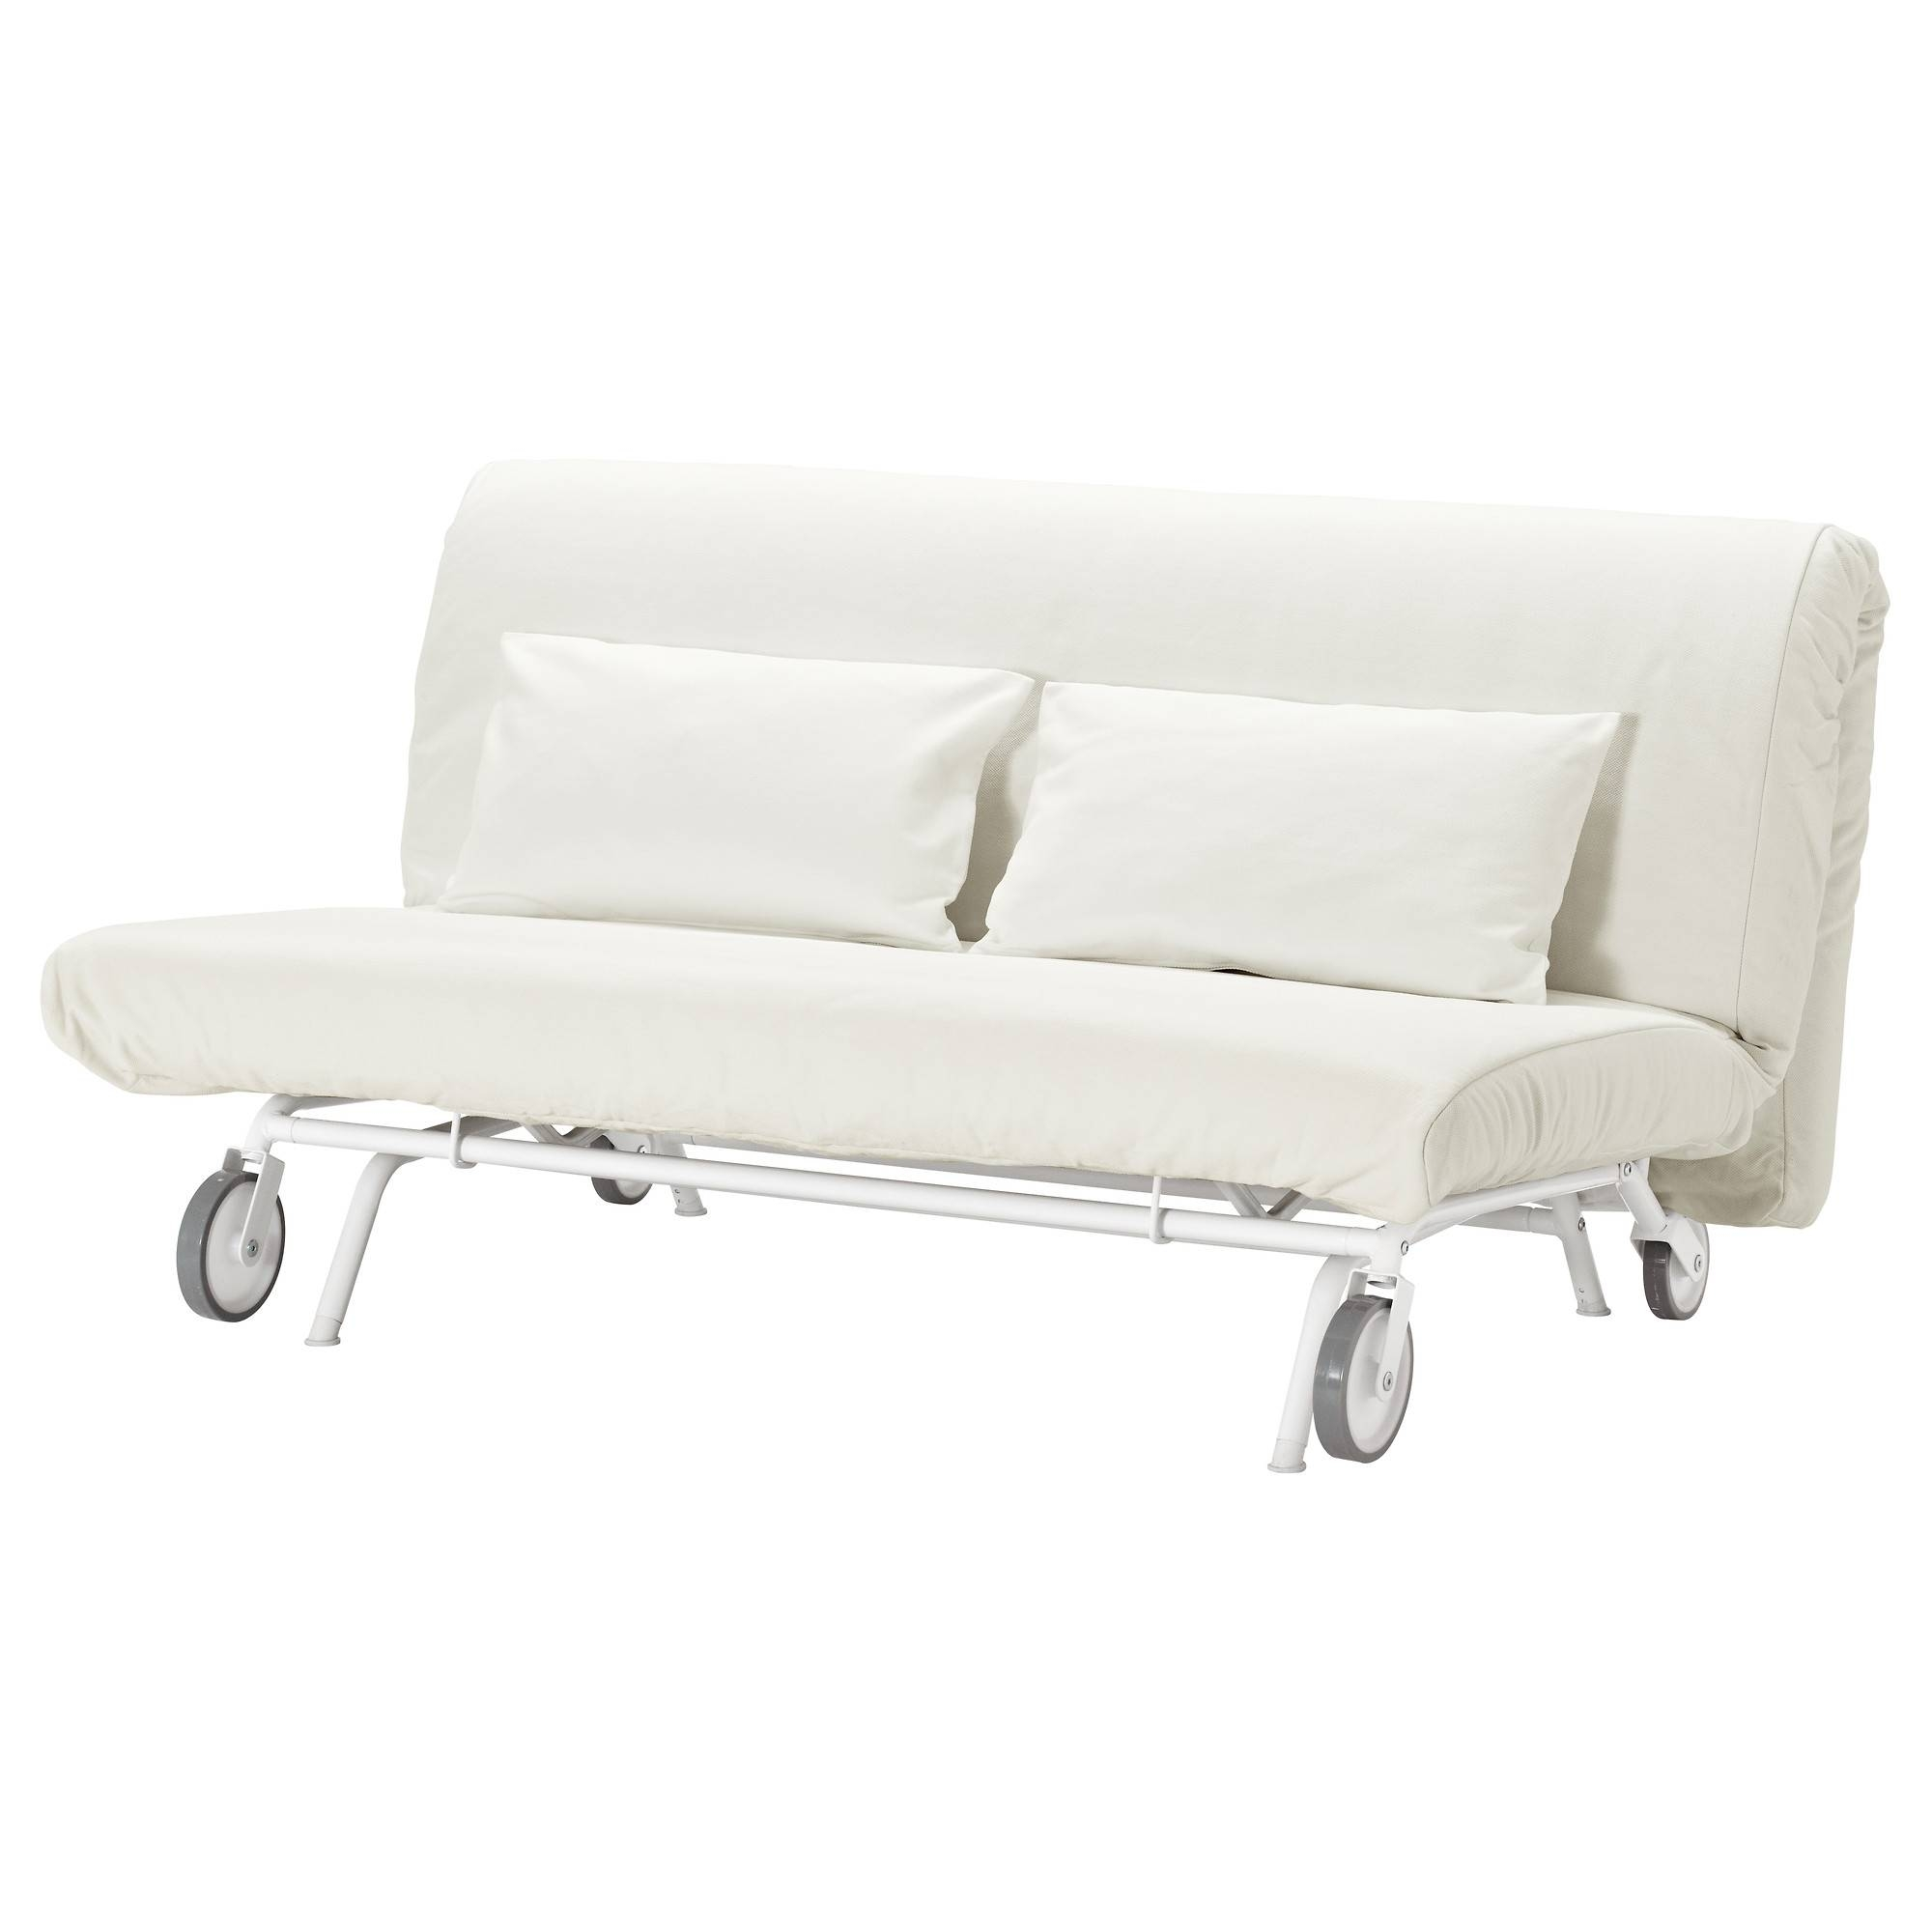 Ikea Ps Lövås Two-Seat Sofa-Bed Gräsbo White - Ikea intended for Ikea Two Seater Sofas (Image 10 of 30)